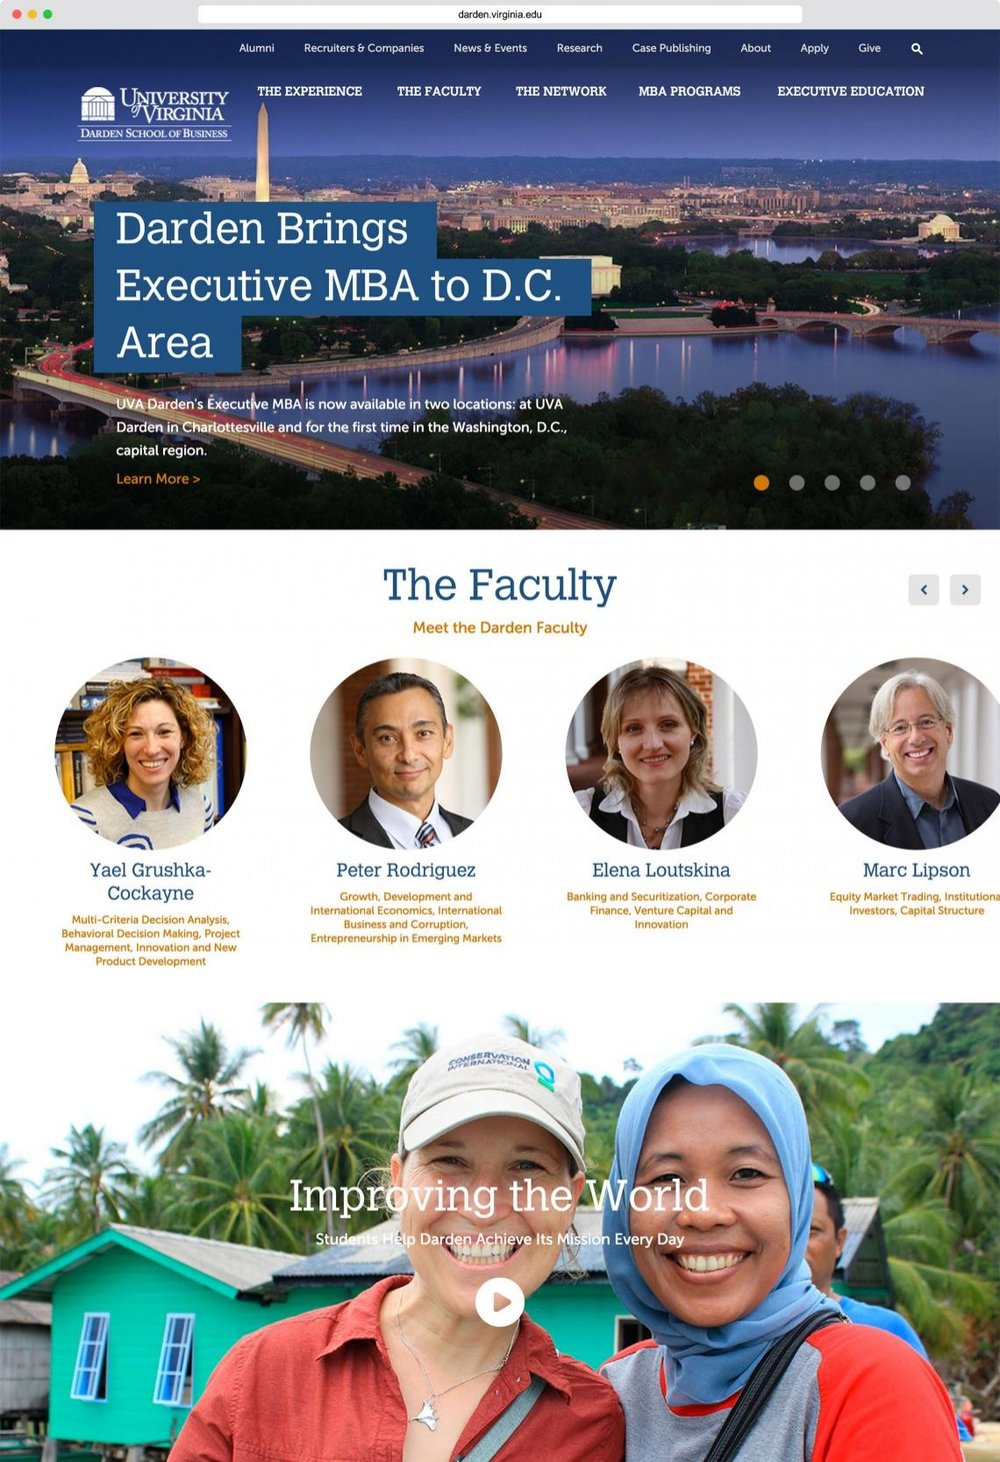 Website Redesign: University of Virginia Darden School of Business  - Project manager and content owner for a responsive website redesign for the U.Va. Darden School of Business. Primary role consisted of managing vendor and stakeholder relations throughout discovery and design phases. Managed discovery and design timeline; facilitated meetings with and consolidated feedback from over 20 stakeholders from different departments, including senior leadership; and oversaw copywriting and UX testing in the MBA section of the website (over 750 webpages).Also project managed website redesigns for 2012 Nobel Laureate Lars Peter Hansen and the Grant Park Music Festival.